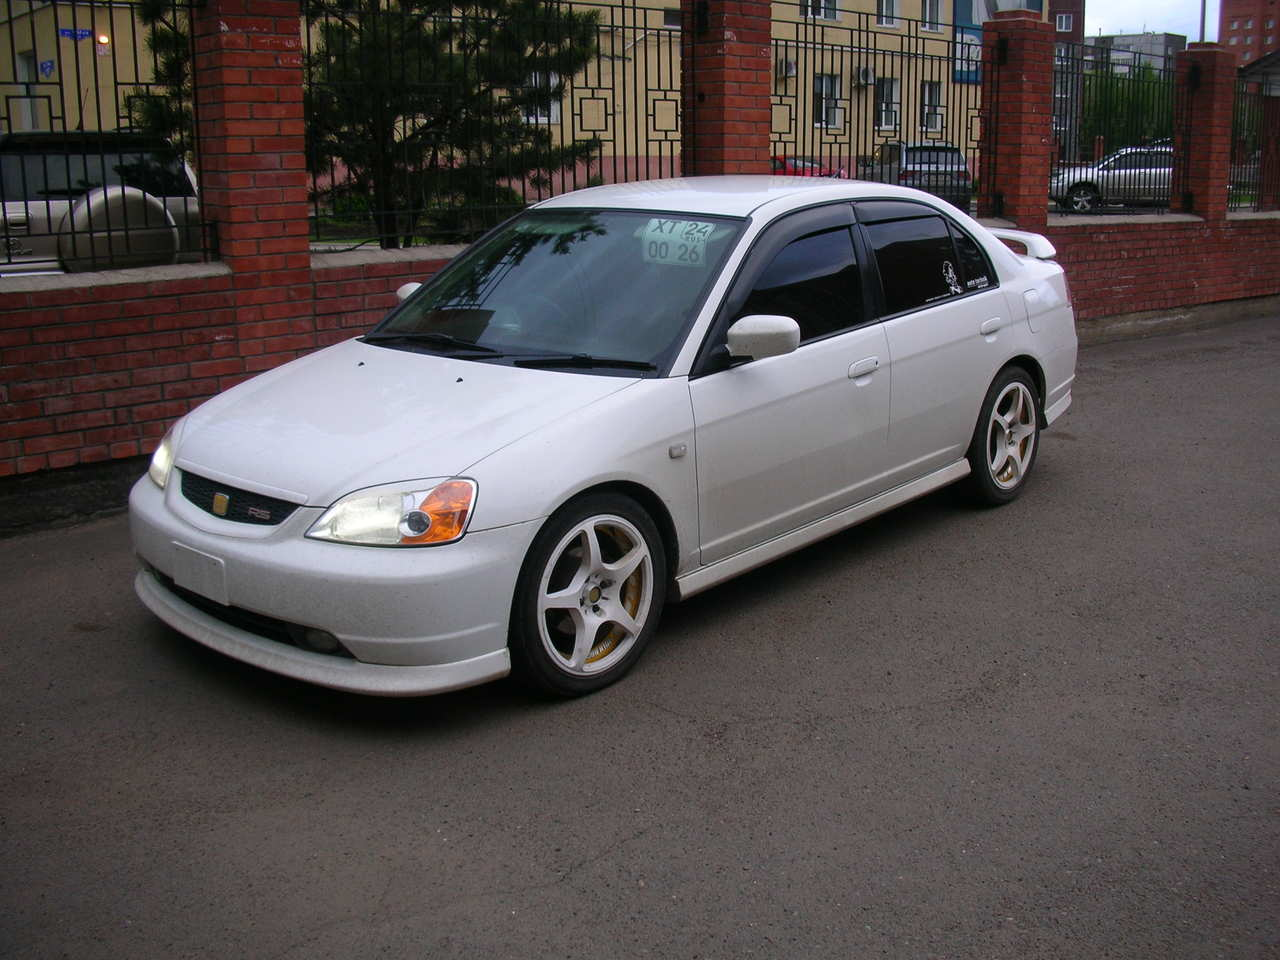 2002 honda accord reviews specs and prices autos post. Black Bedroom Furniture Sets. Home Design Ideas